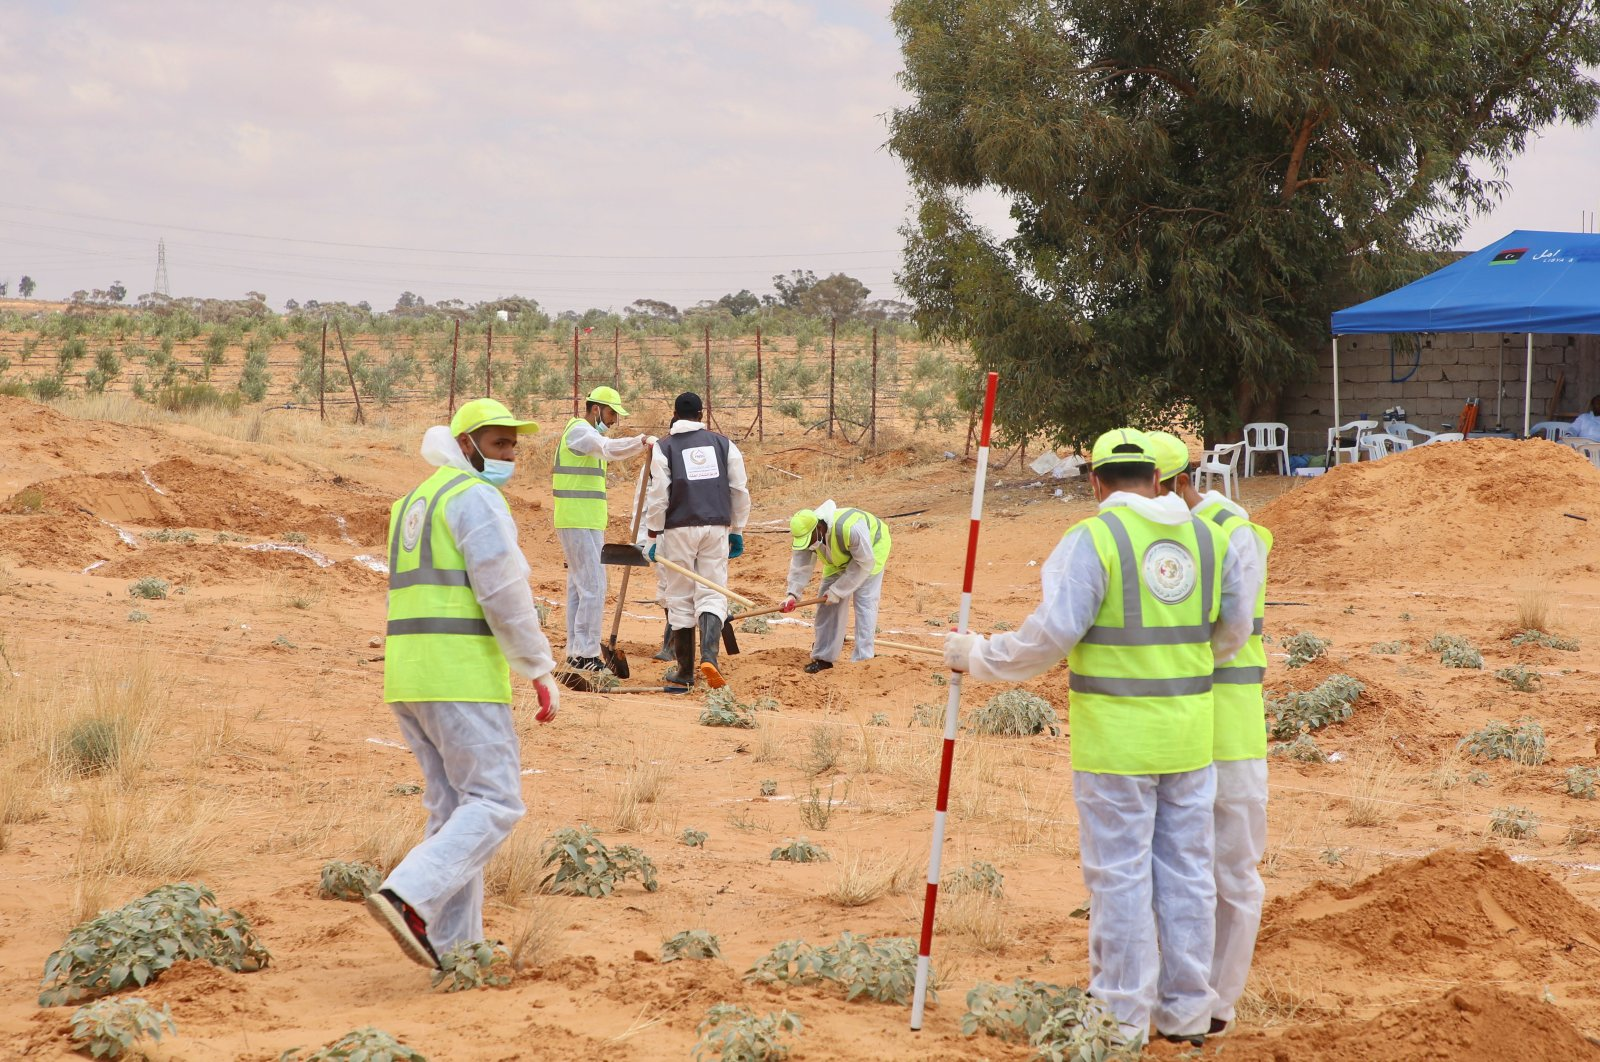 Libyan officials conduct excavation work at a mass grave in an area formerly held by the putschist Gen. Khalifa Haftar, Tarhuna, June 24, 2020. (AA Photo)